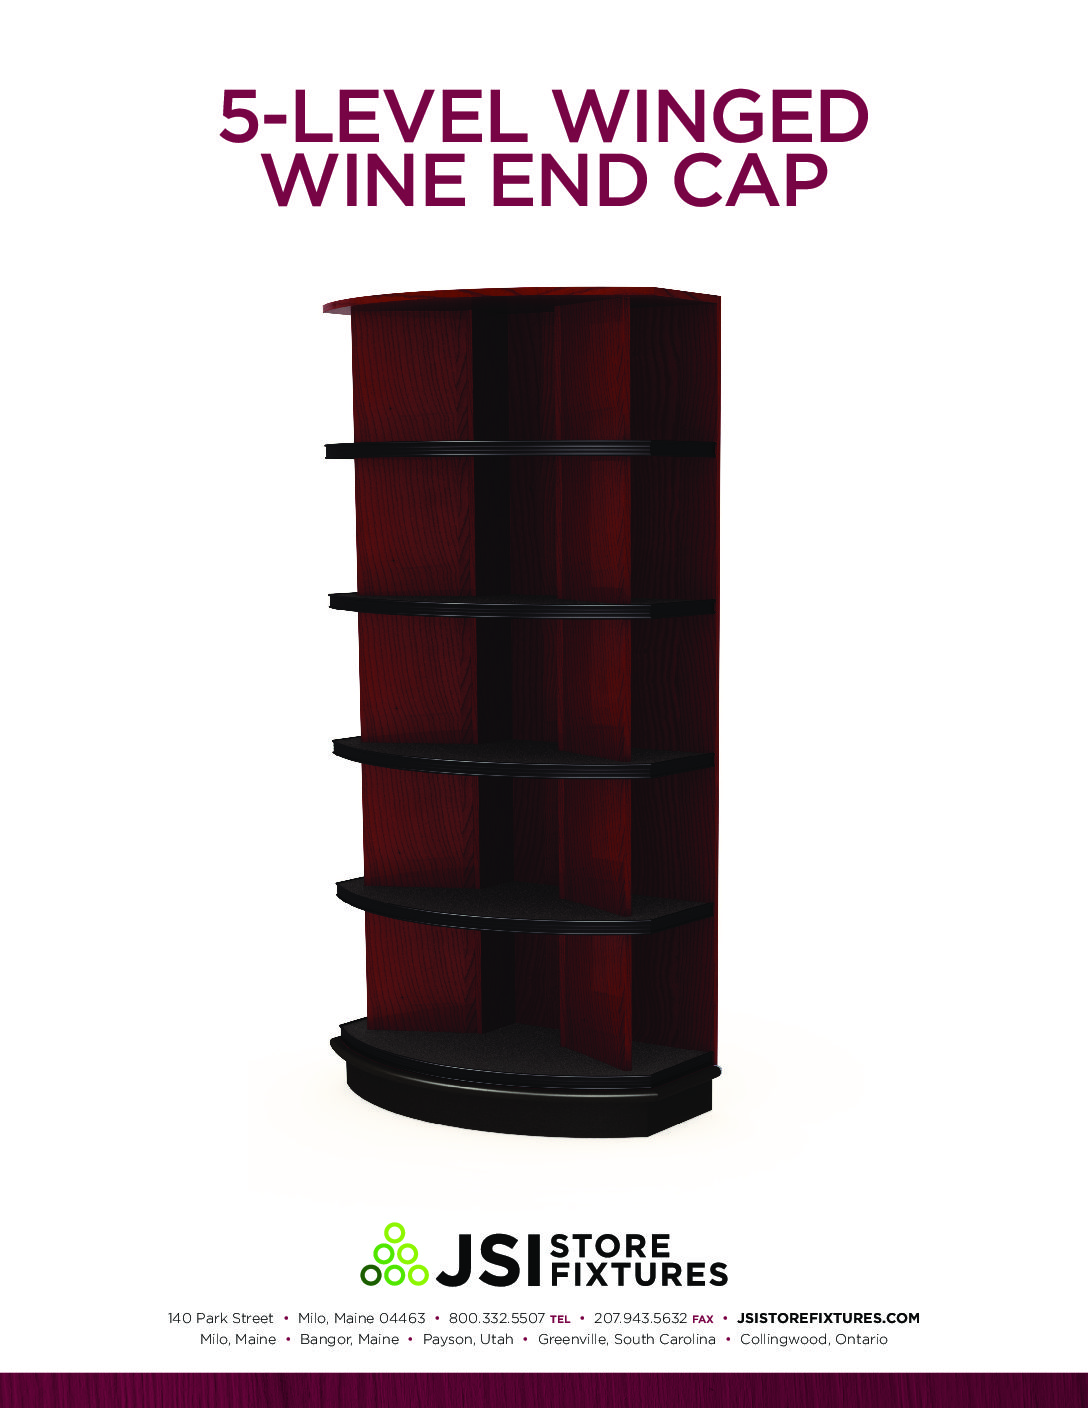 5-Level Winged Wine End Cap